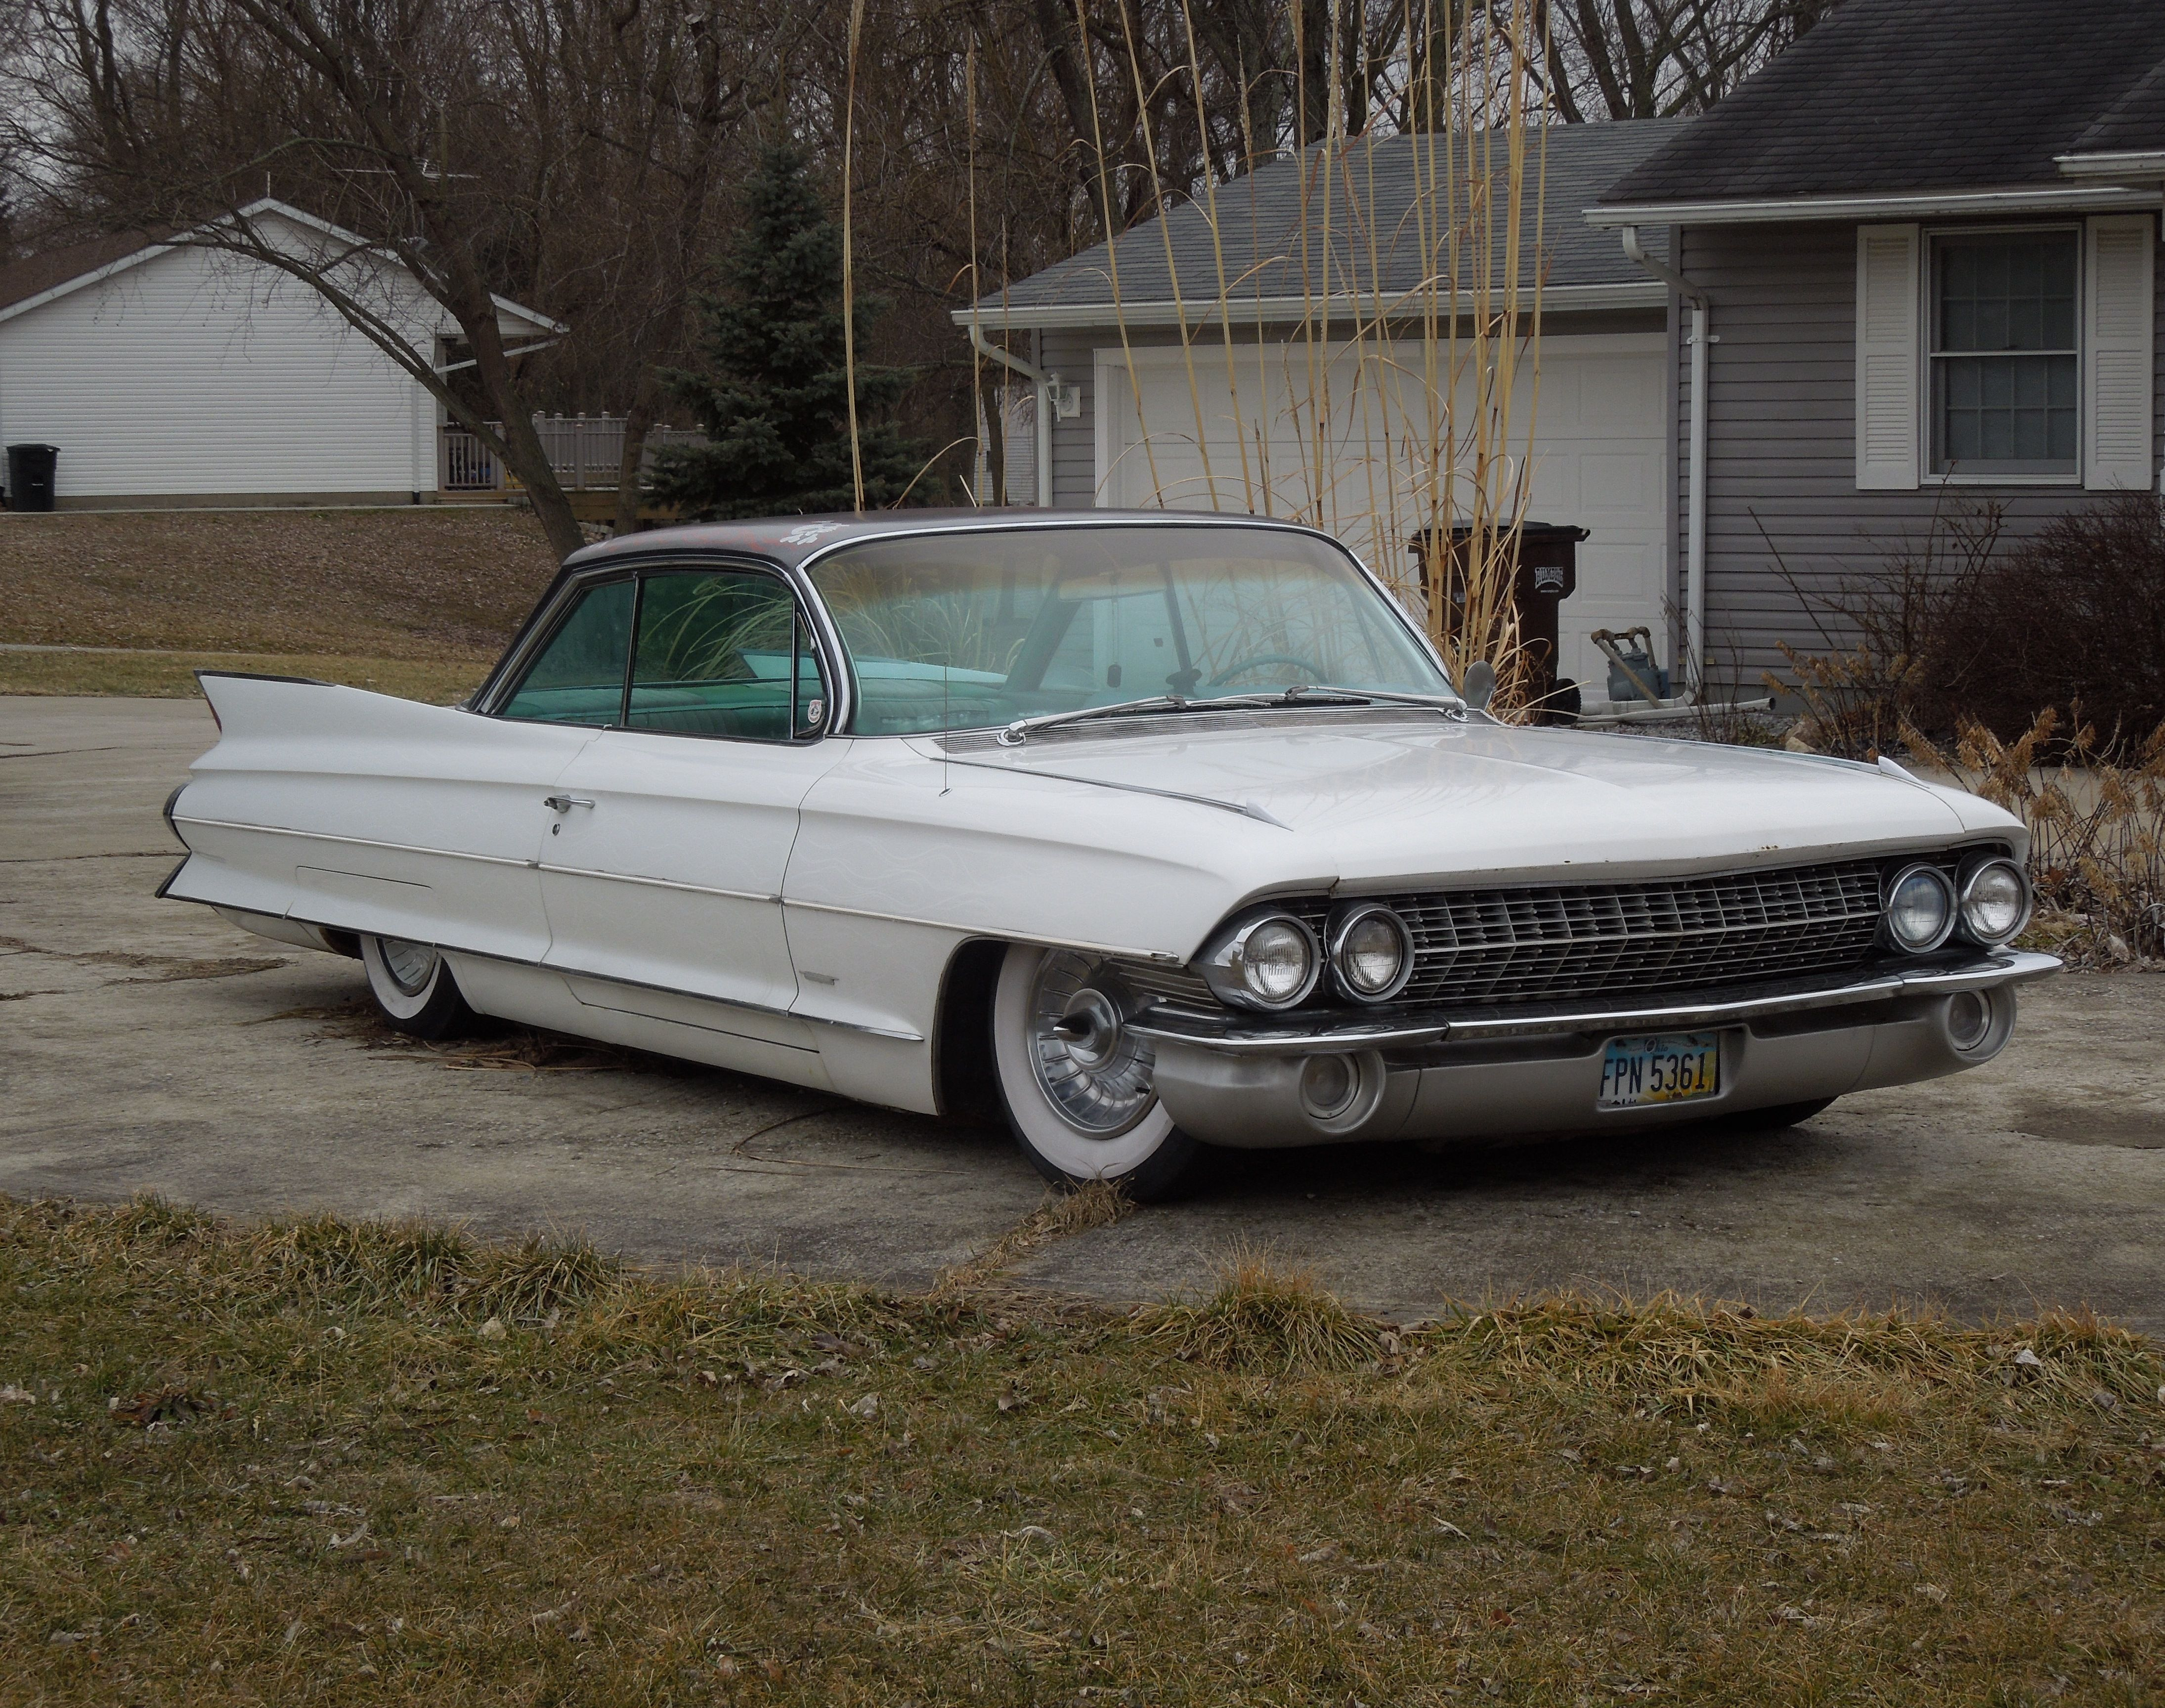 Vintage car in Ohio.   MJF PHOTOGRAPHY   Pinterest   Photography